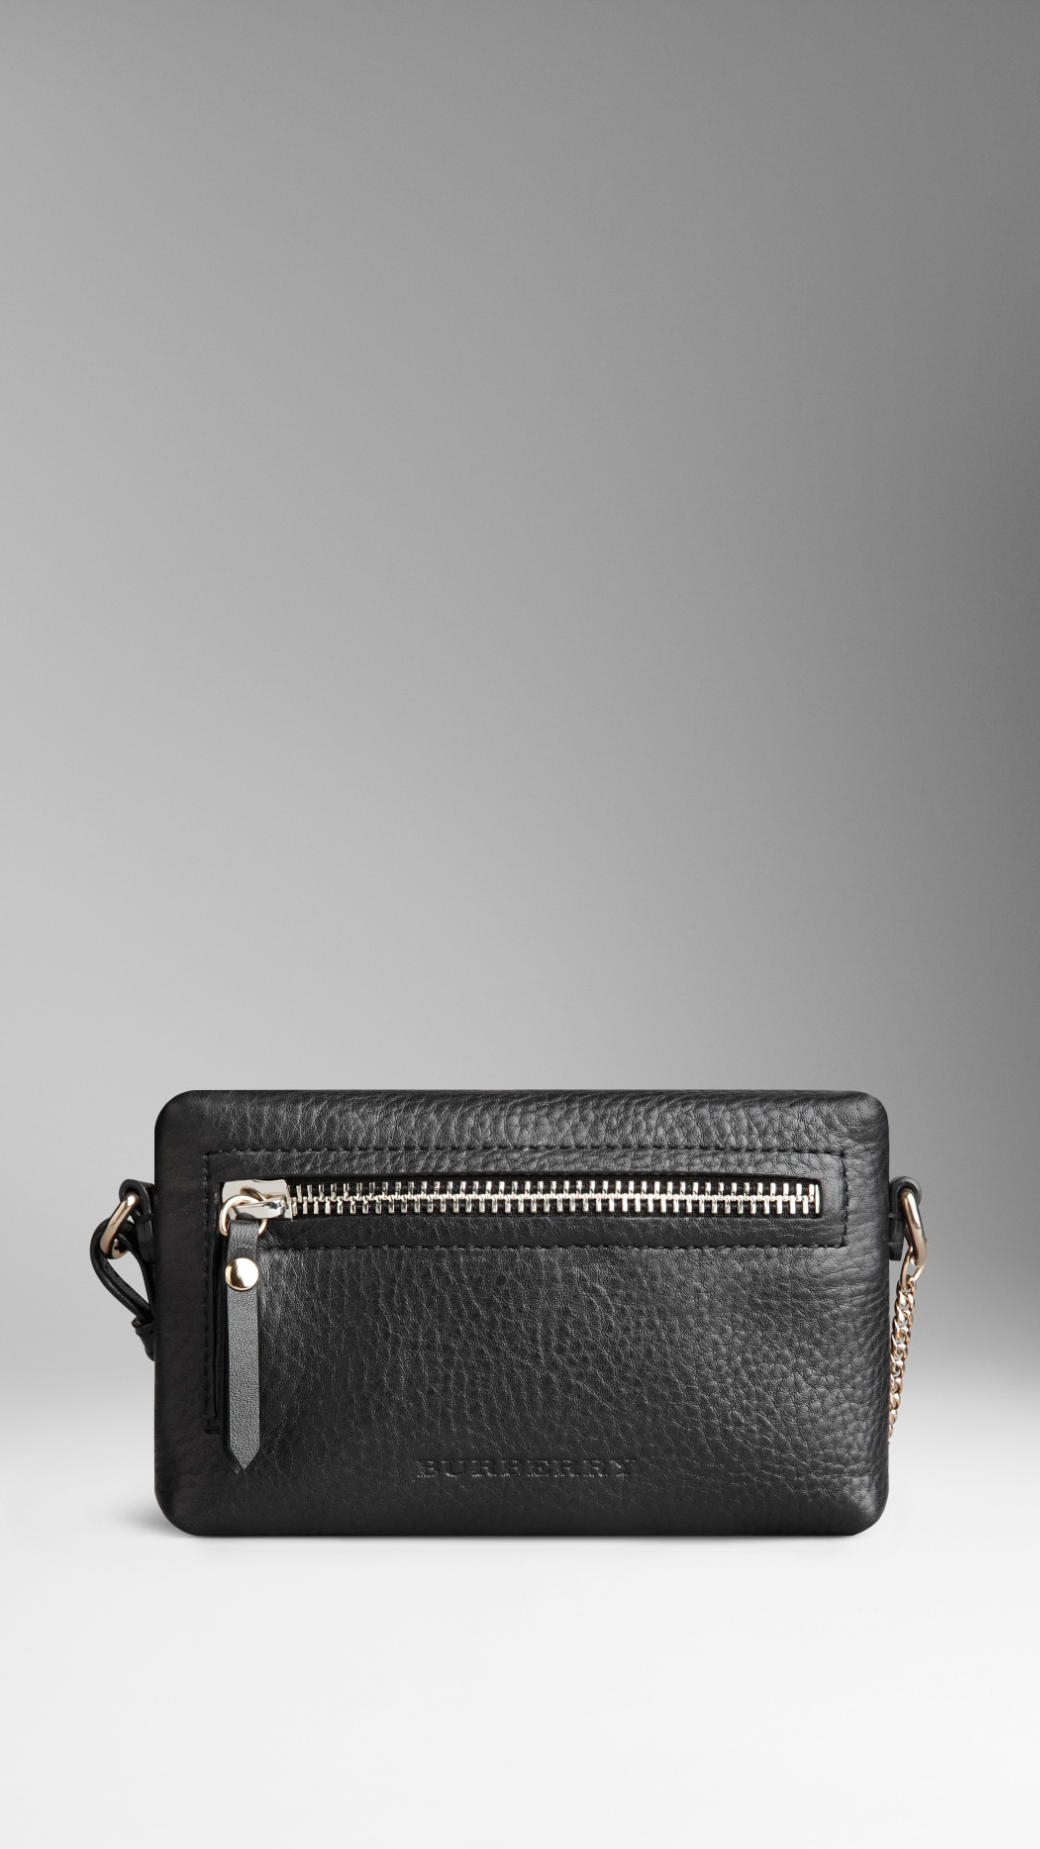 84a5fba83369 Lyst Burberry Mini Grainy Leather Crossbody Bag In Black